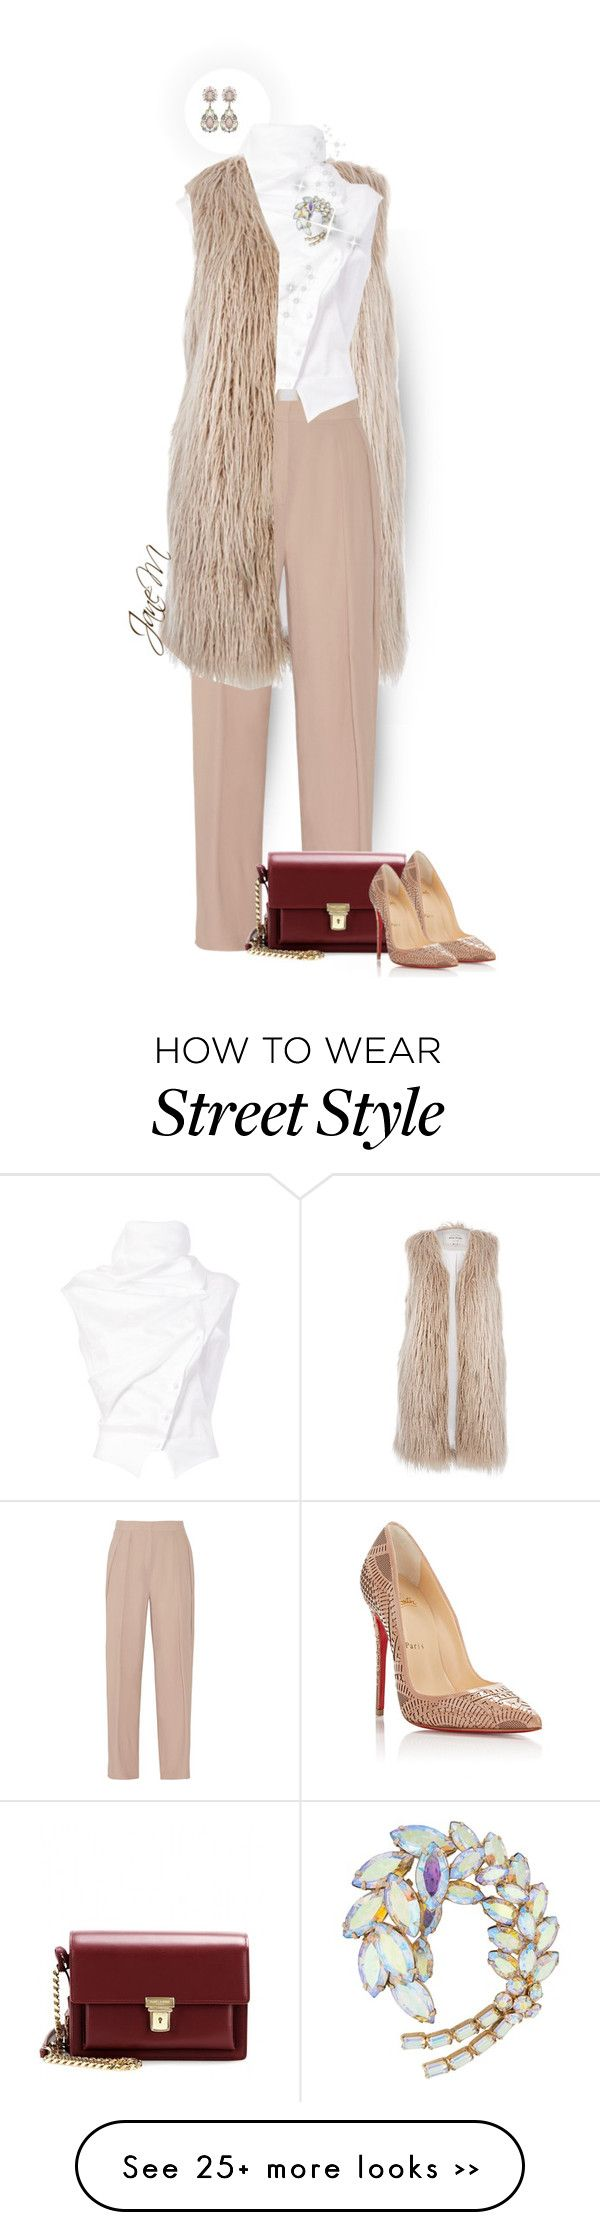 """""""Street style"""" by janemichaud-ipod on Polyvore featuring River Island, By Malene Birger, Aganovich, Susan Caplan Vintage, Yves Saint Laurent and Christian Louboutin"""